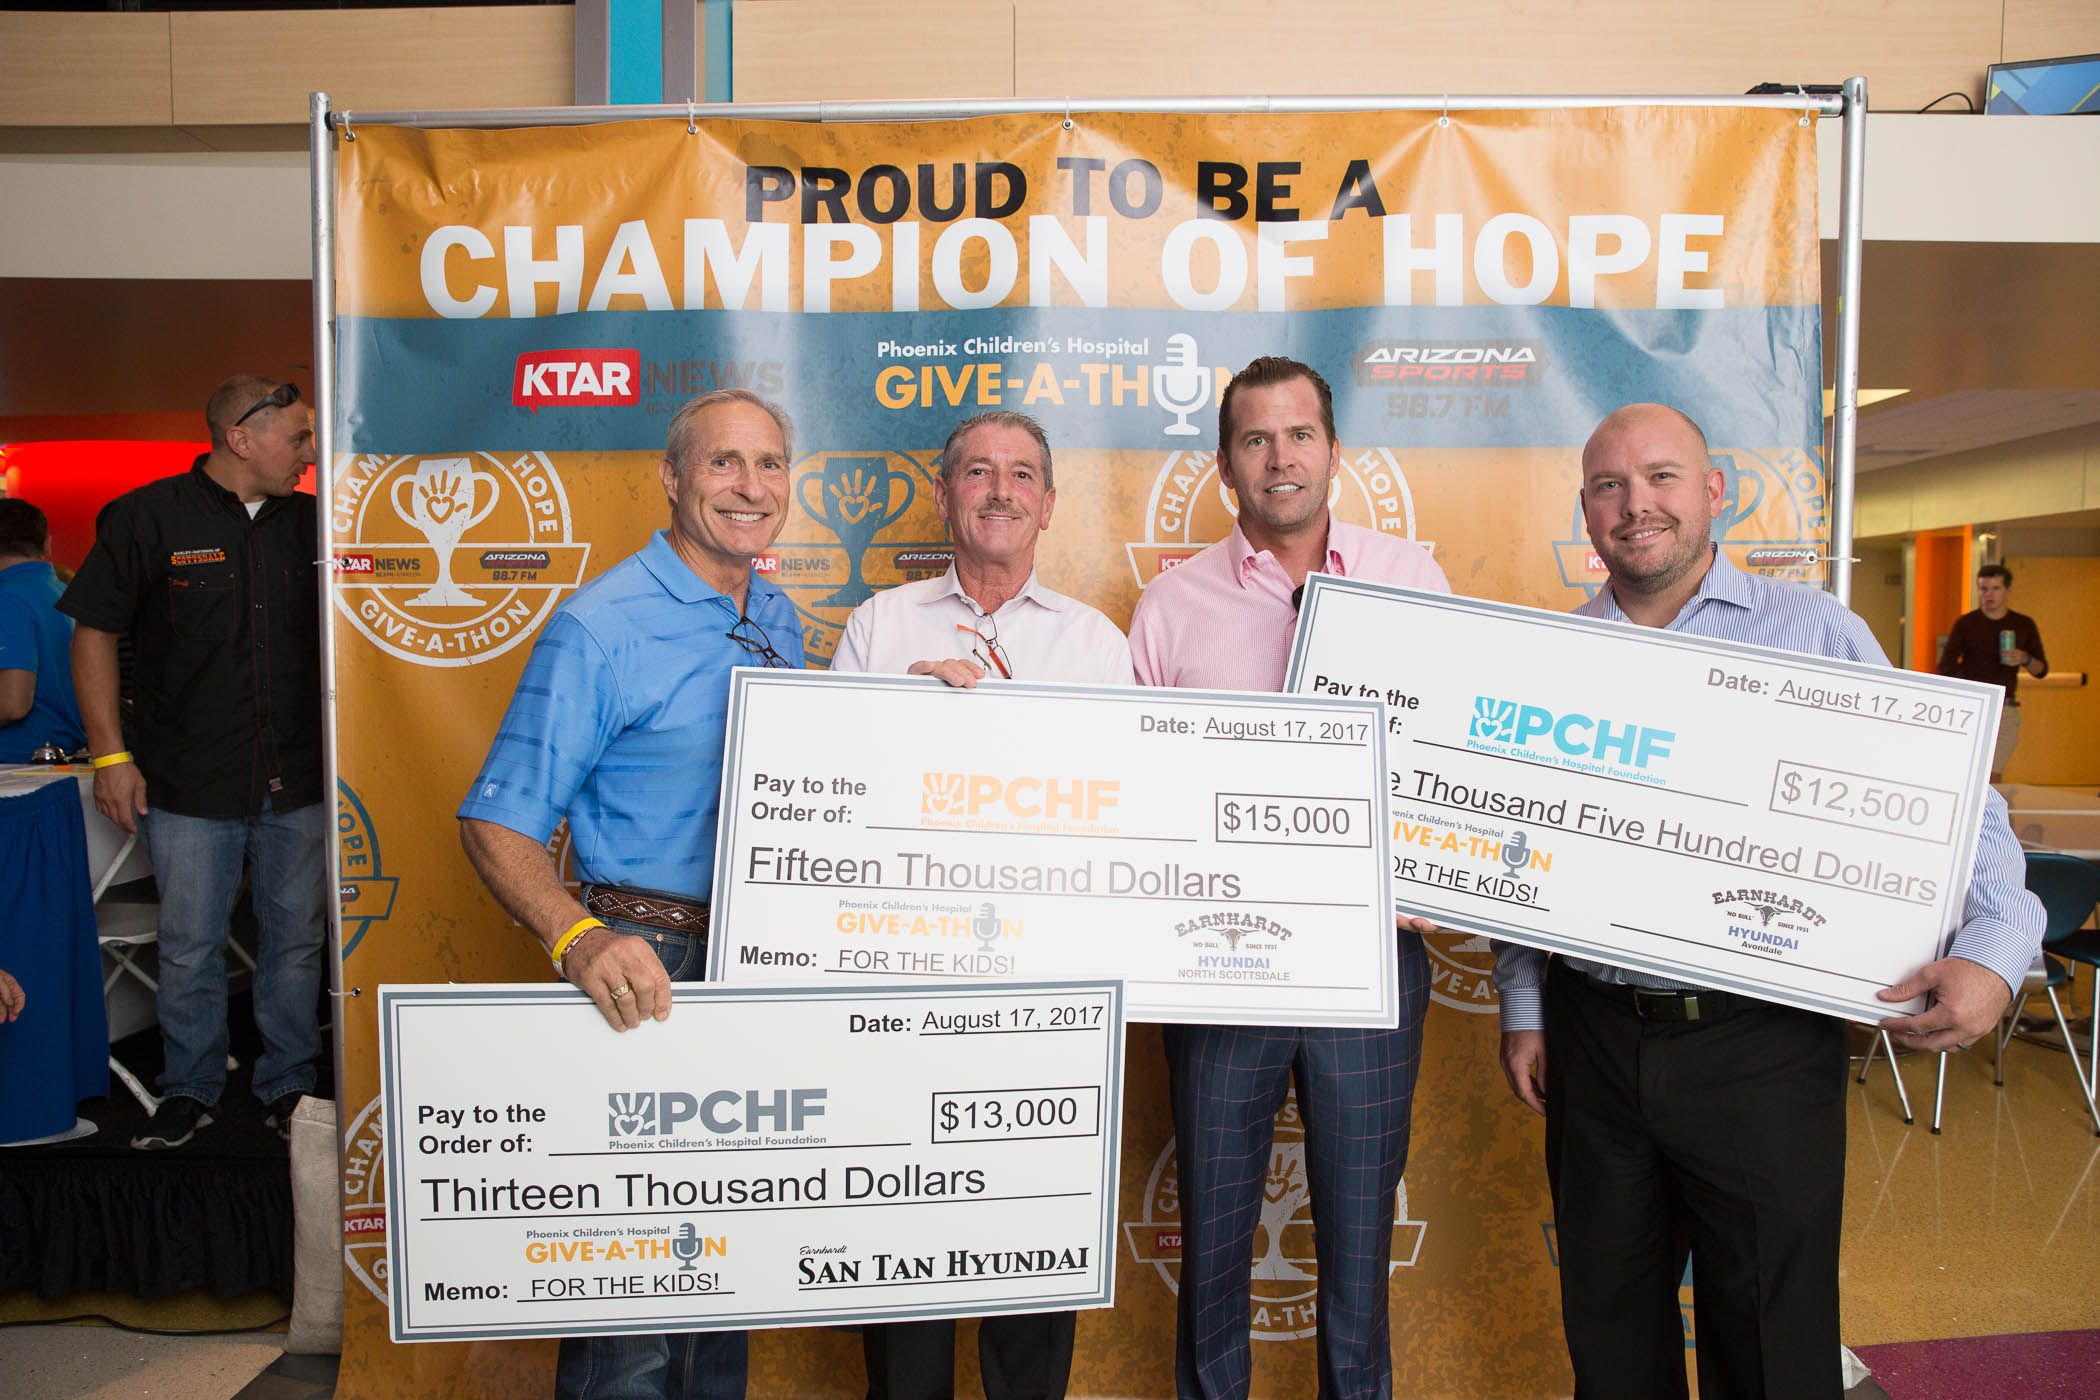 Earnhardt Hyundai Dealers are proud Champions of Hope for Phoenix C